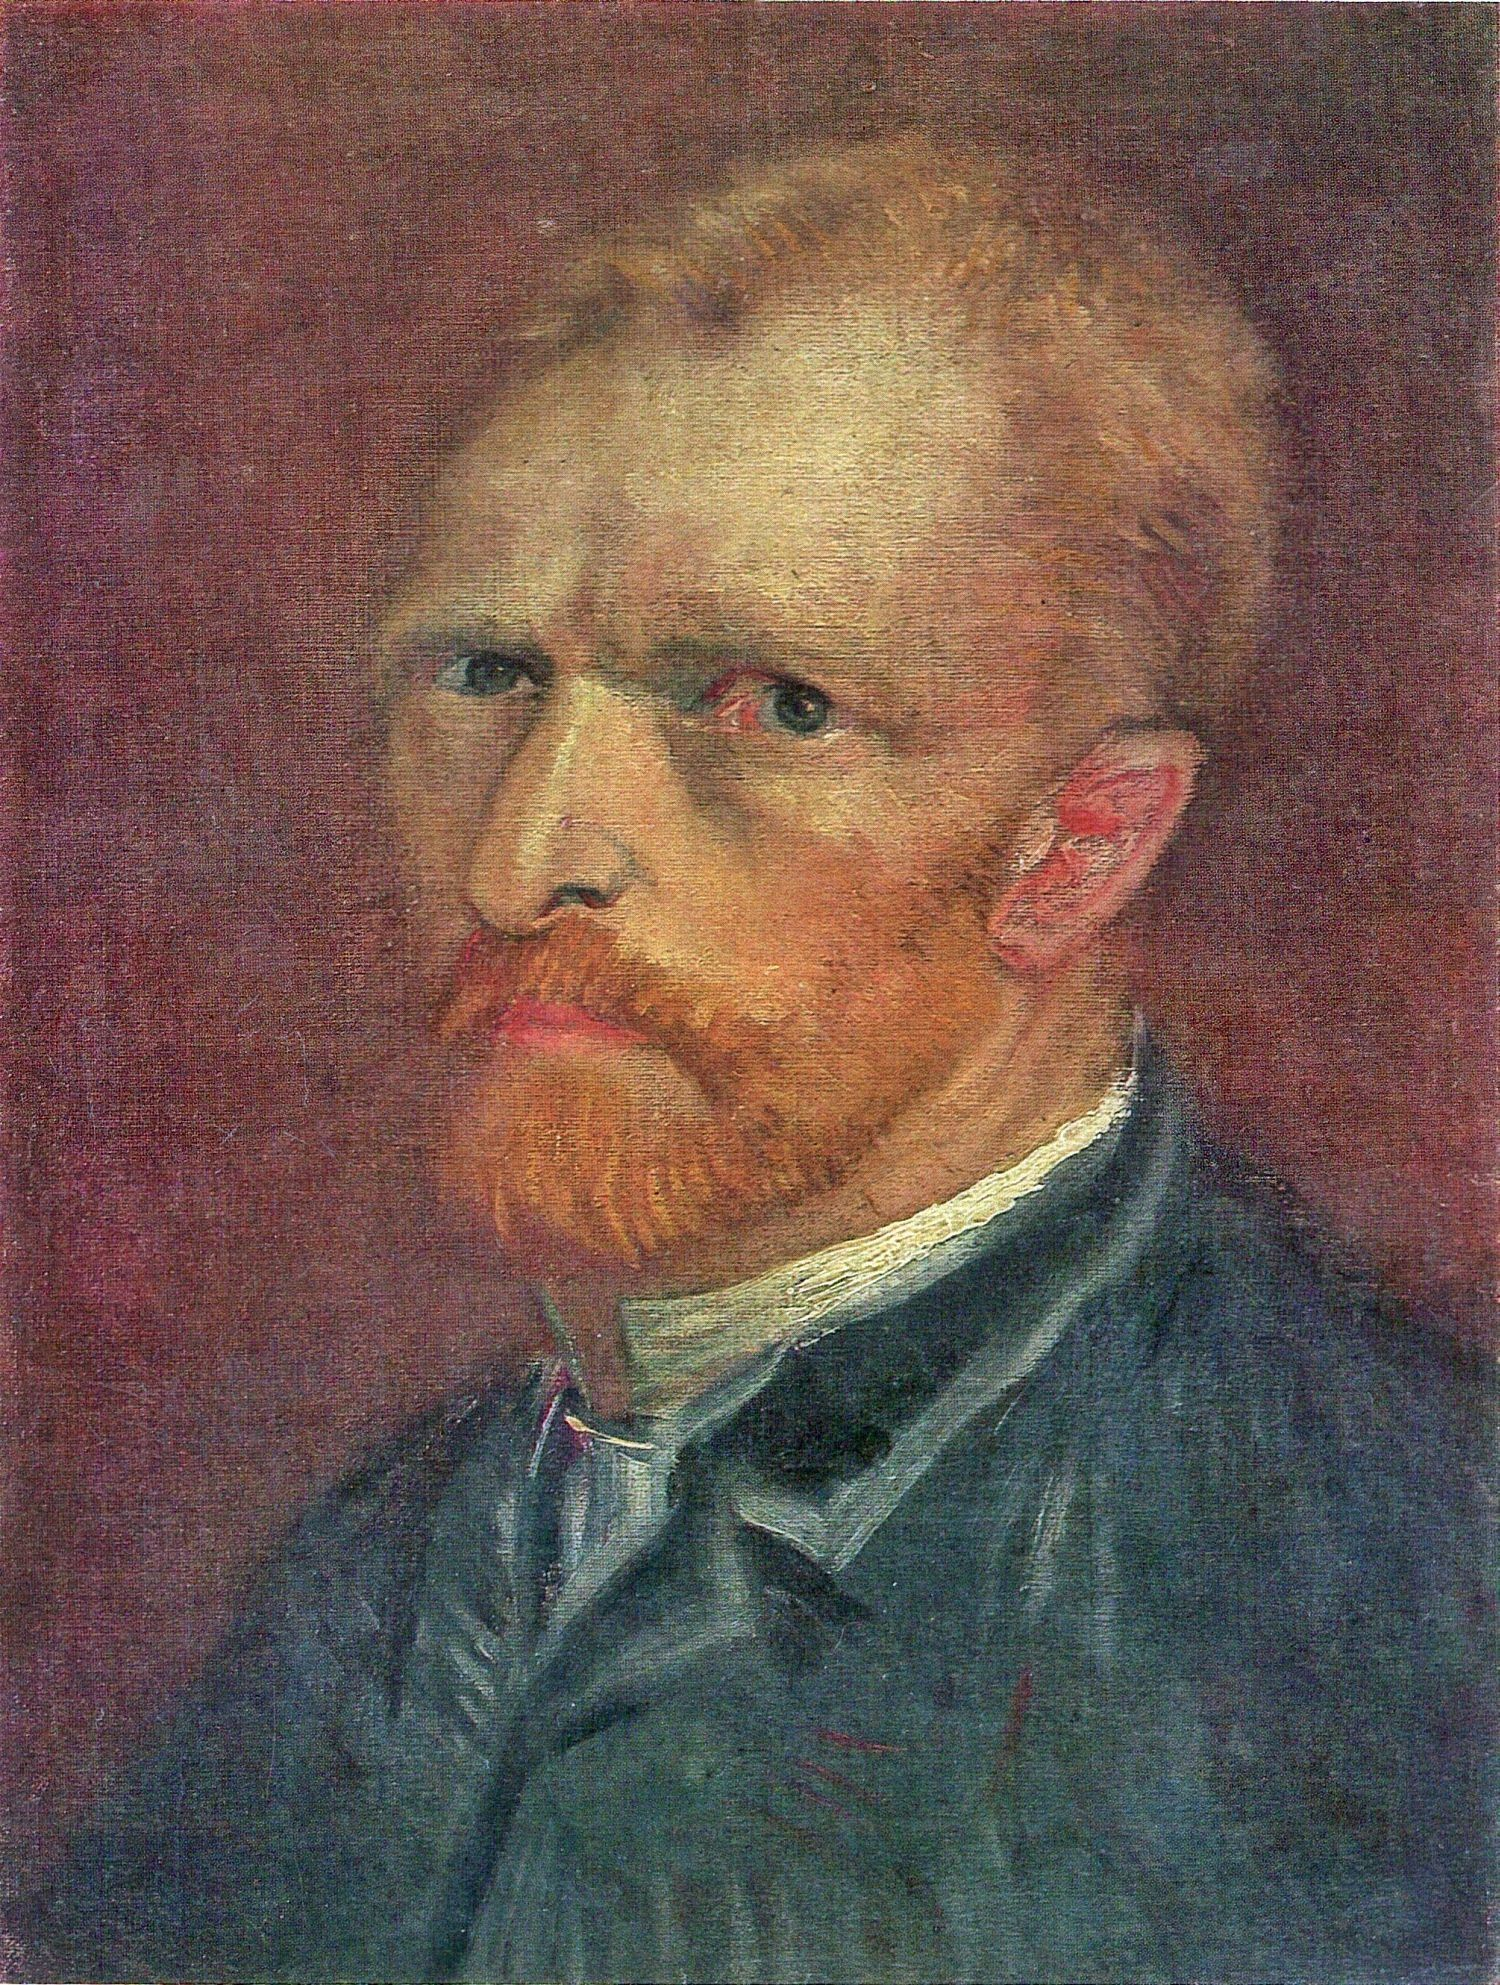 Self-Portrait of Vincent van Gogh (F 178v, JH 1198) Painted in Paris, Autumn, 1886